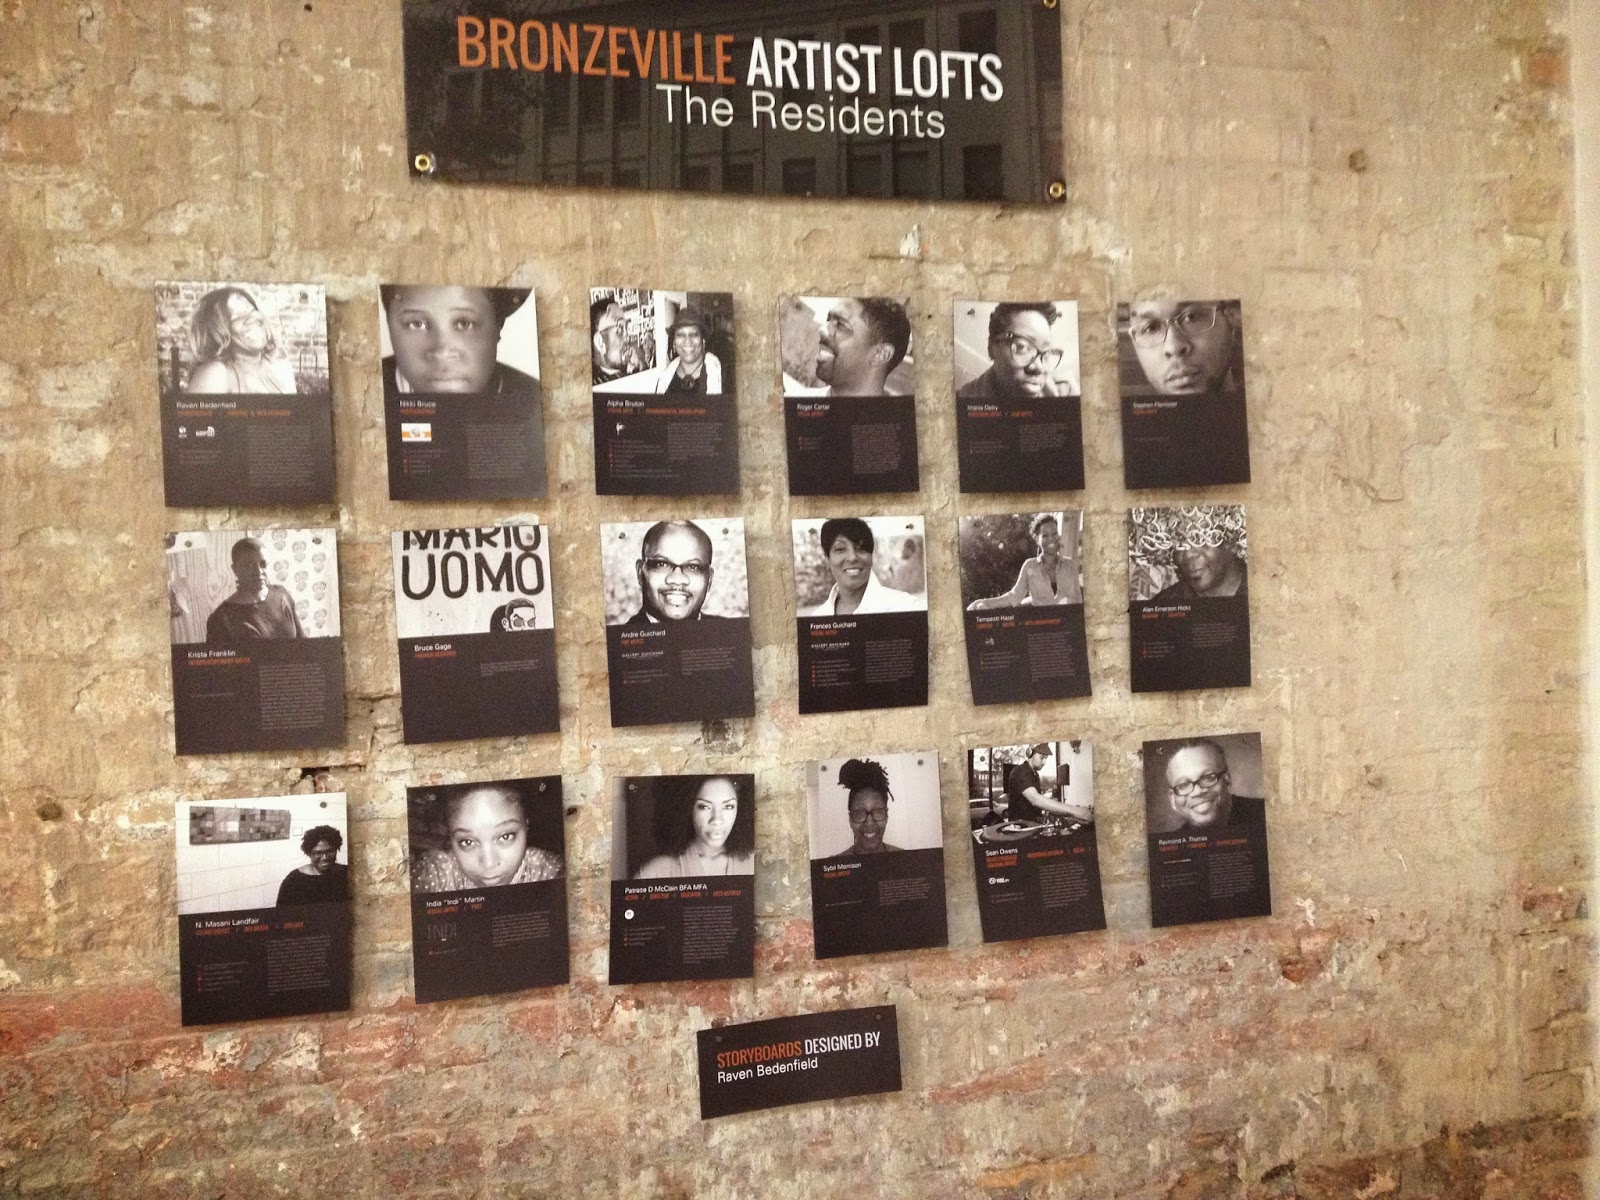 Bronzeville Artists Lofts Residents